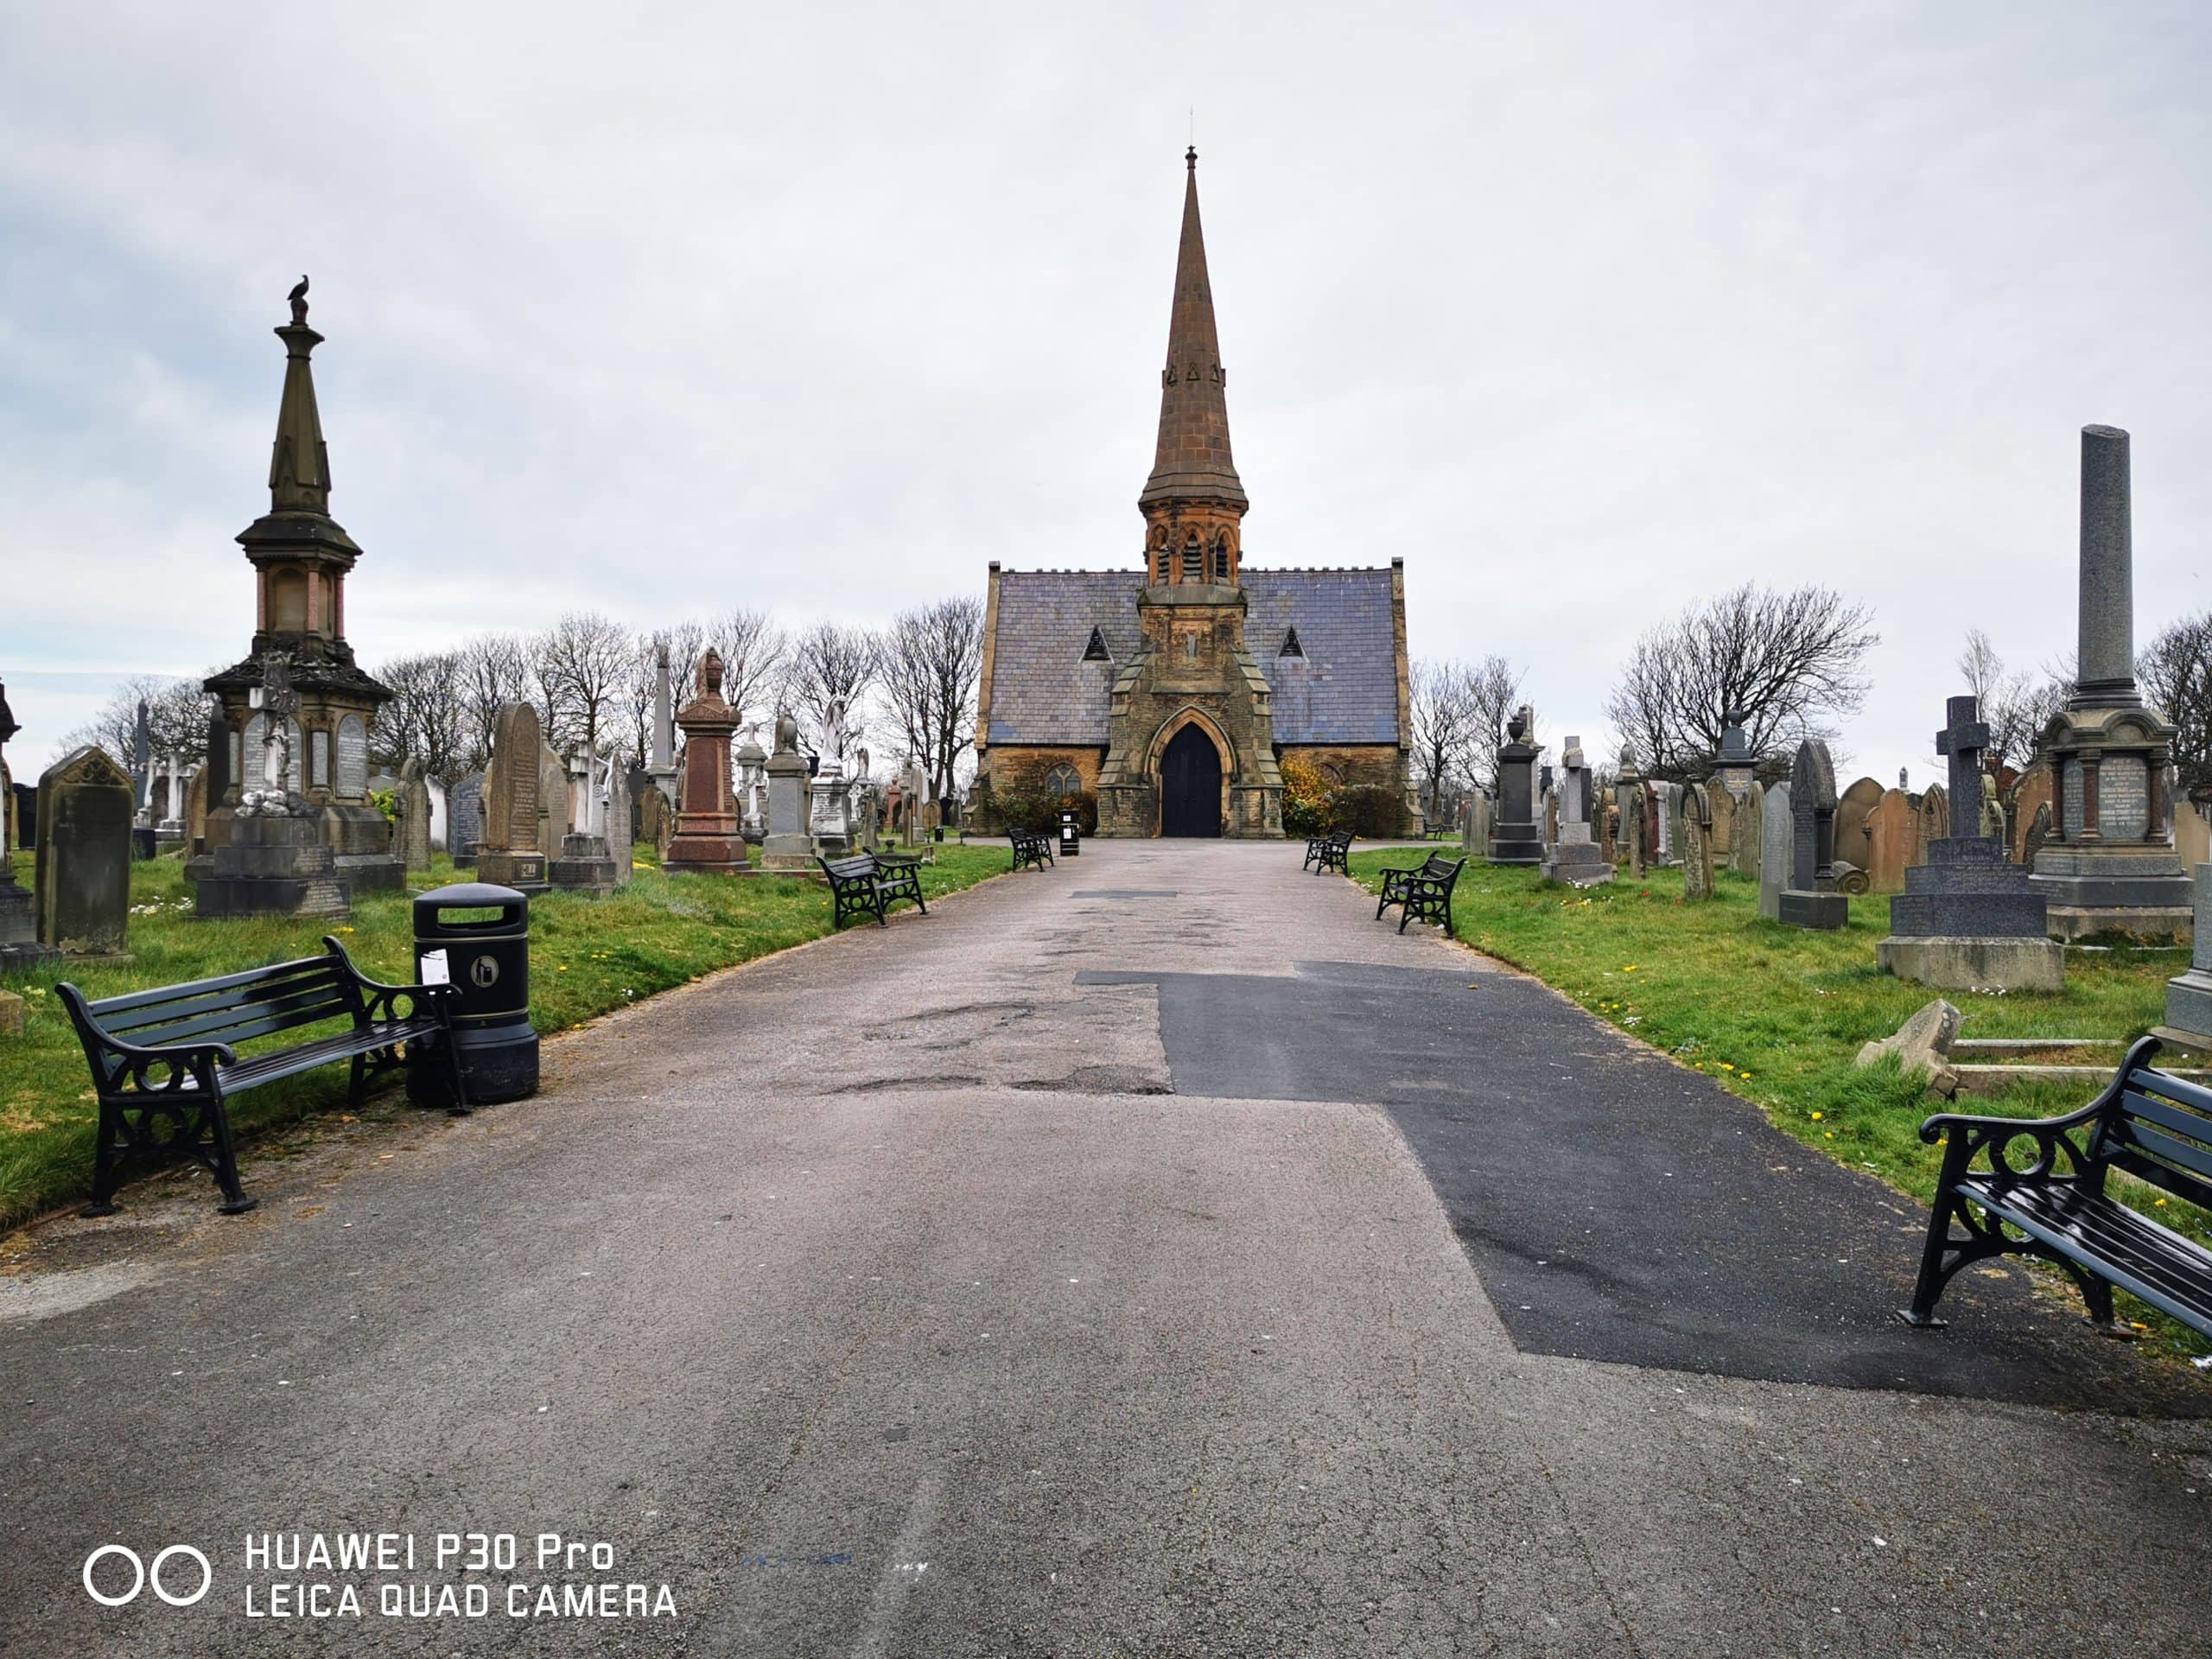 Huawei P40 Pro vs P30 Pro Camera Samples Compared & Photo Gallery 38